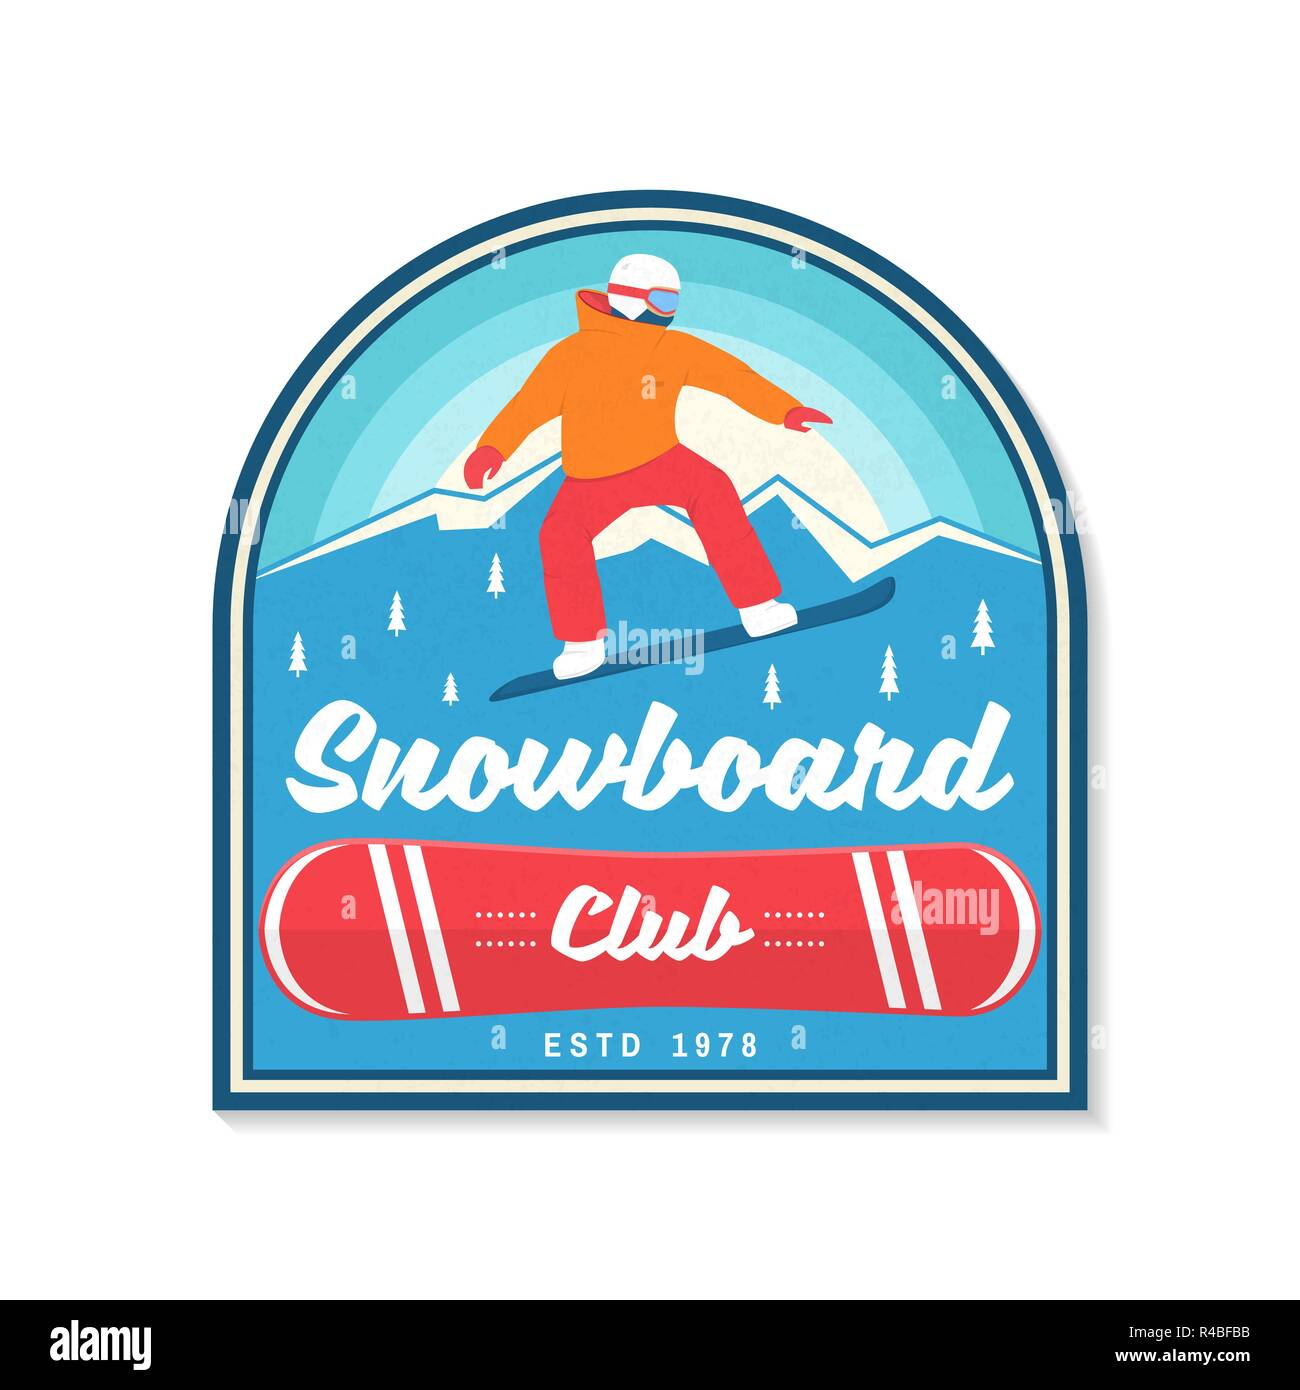 Snowboard Club. Vector illustration. Concept for patch, shirt, print, stamp or tee. Vintage typography design with snowboarder and mountain silhouette. Extreme sport. - Stock Image